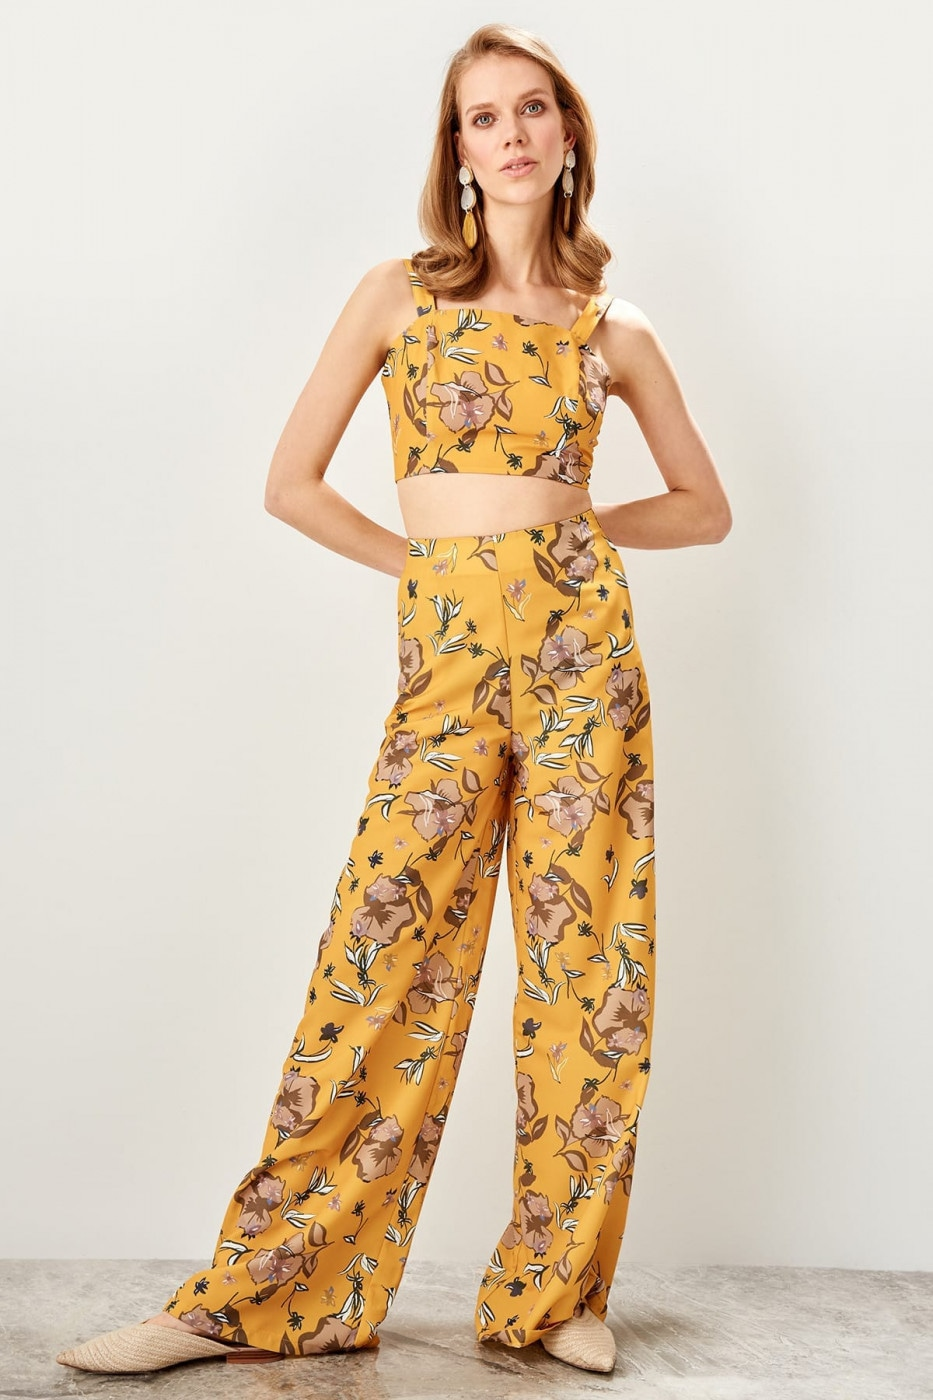 Trendyol Multicolored Patterned Pants